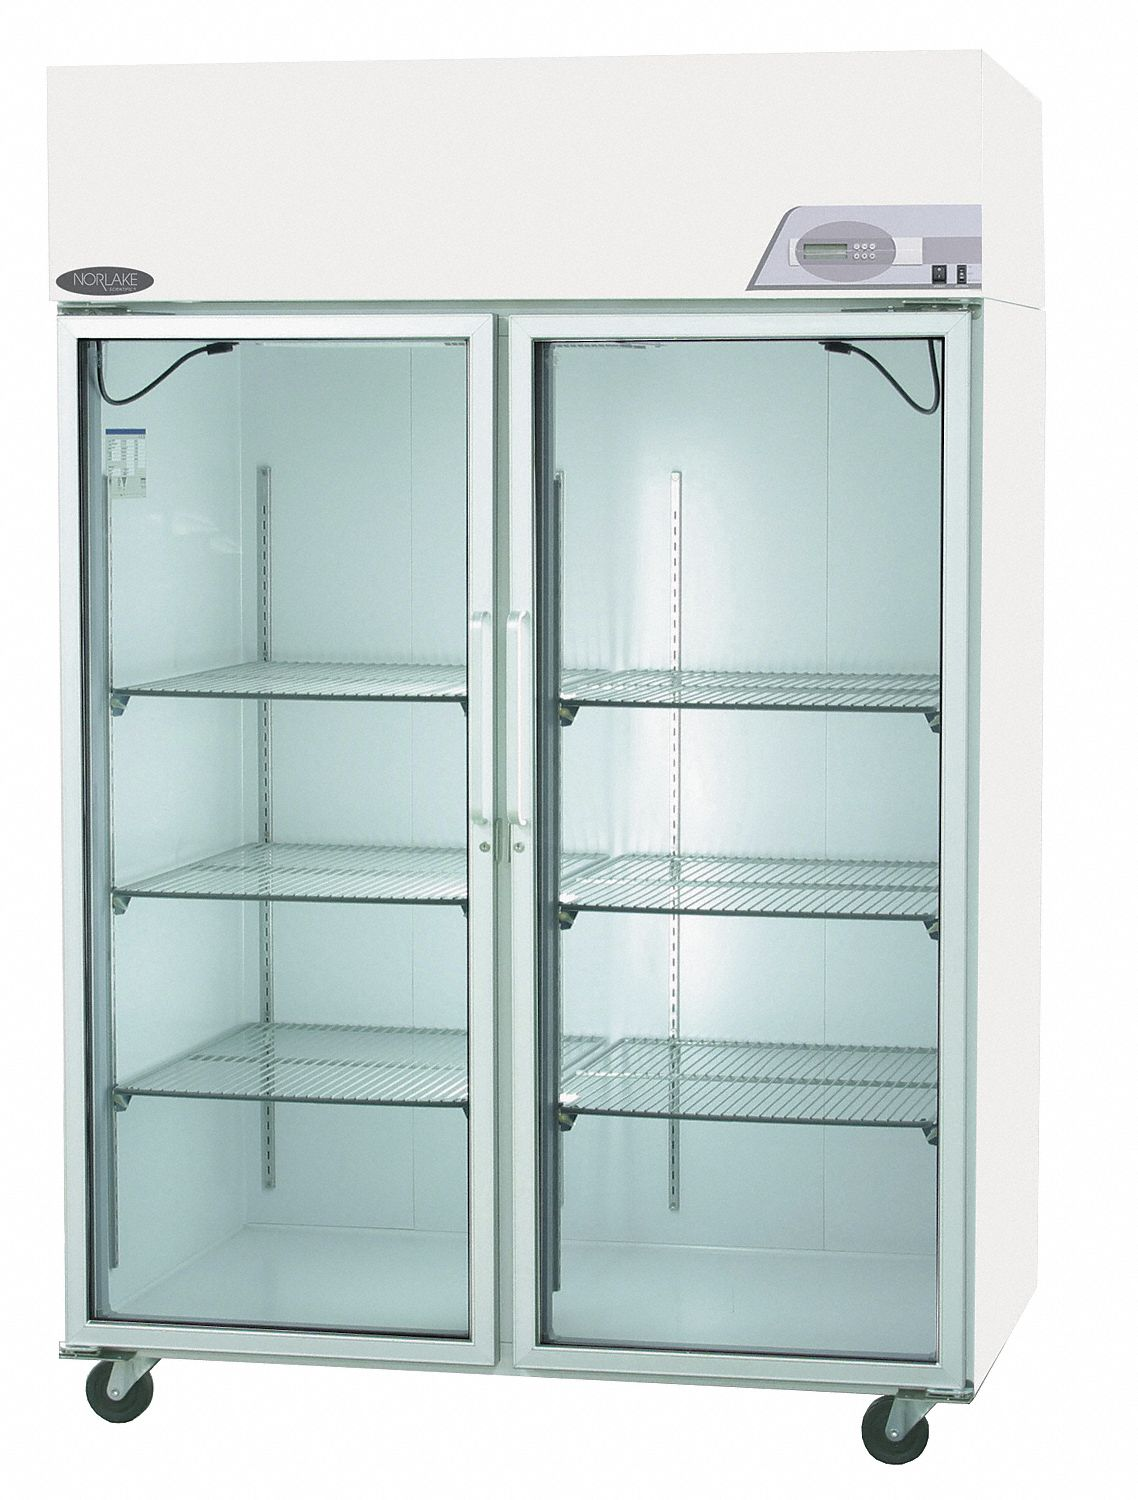 Nor Lake Scientific Refrigerator Upright 52 Cu Ft